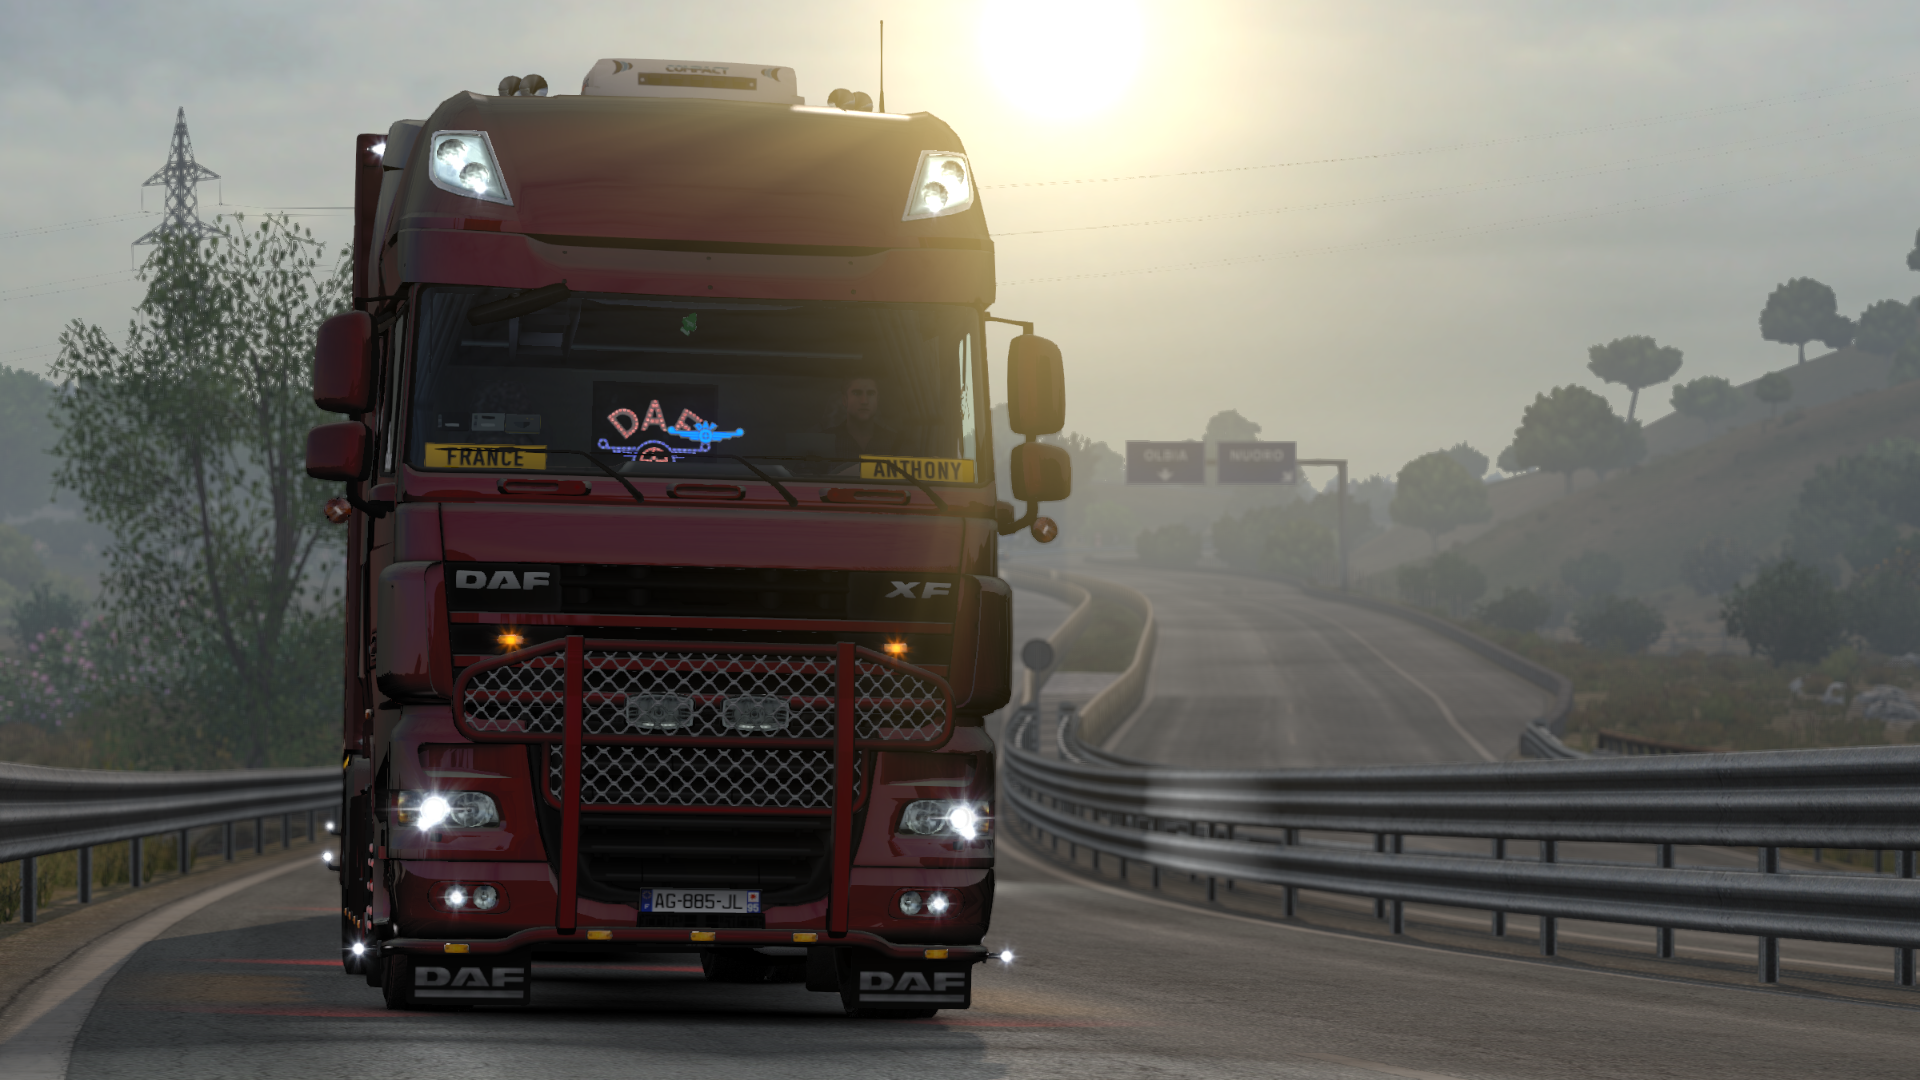 ets2_20190610_111702_00.png